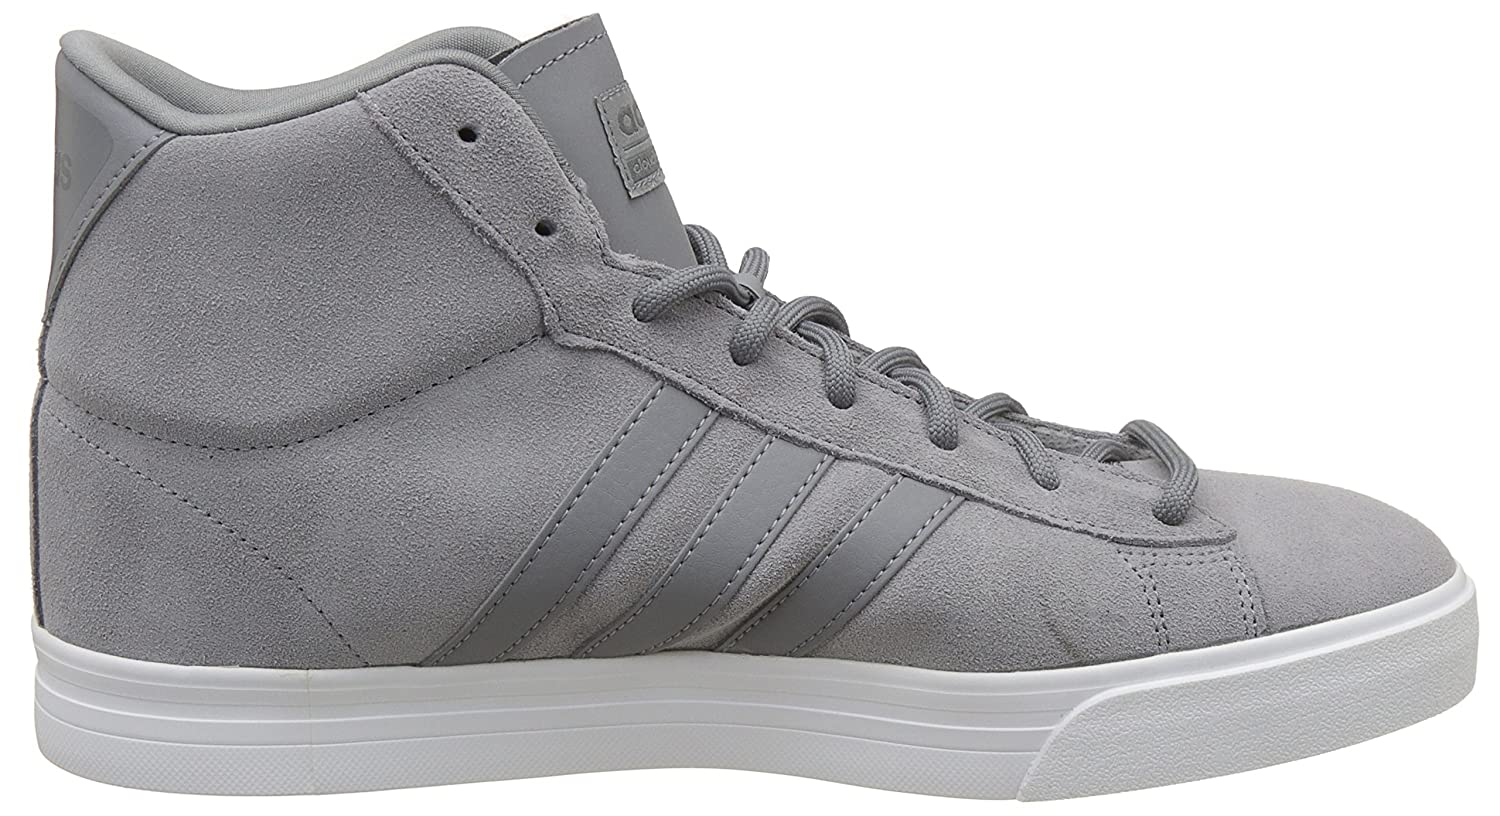 new style 07055 ff4ae adidas neo Mens Cf Super Daily Mid GrethrGrethrGrefou Sneakers - 7  UKIndia (40.67 EU) Buy Online at Low Prices in India - Amazon.in